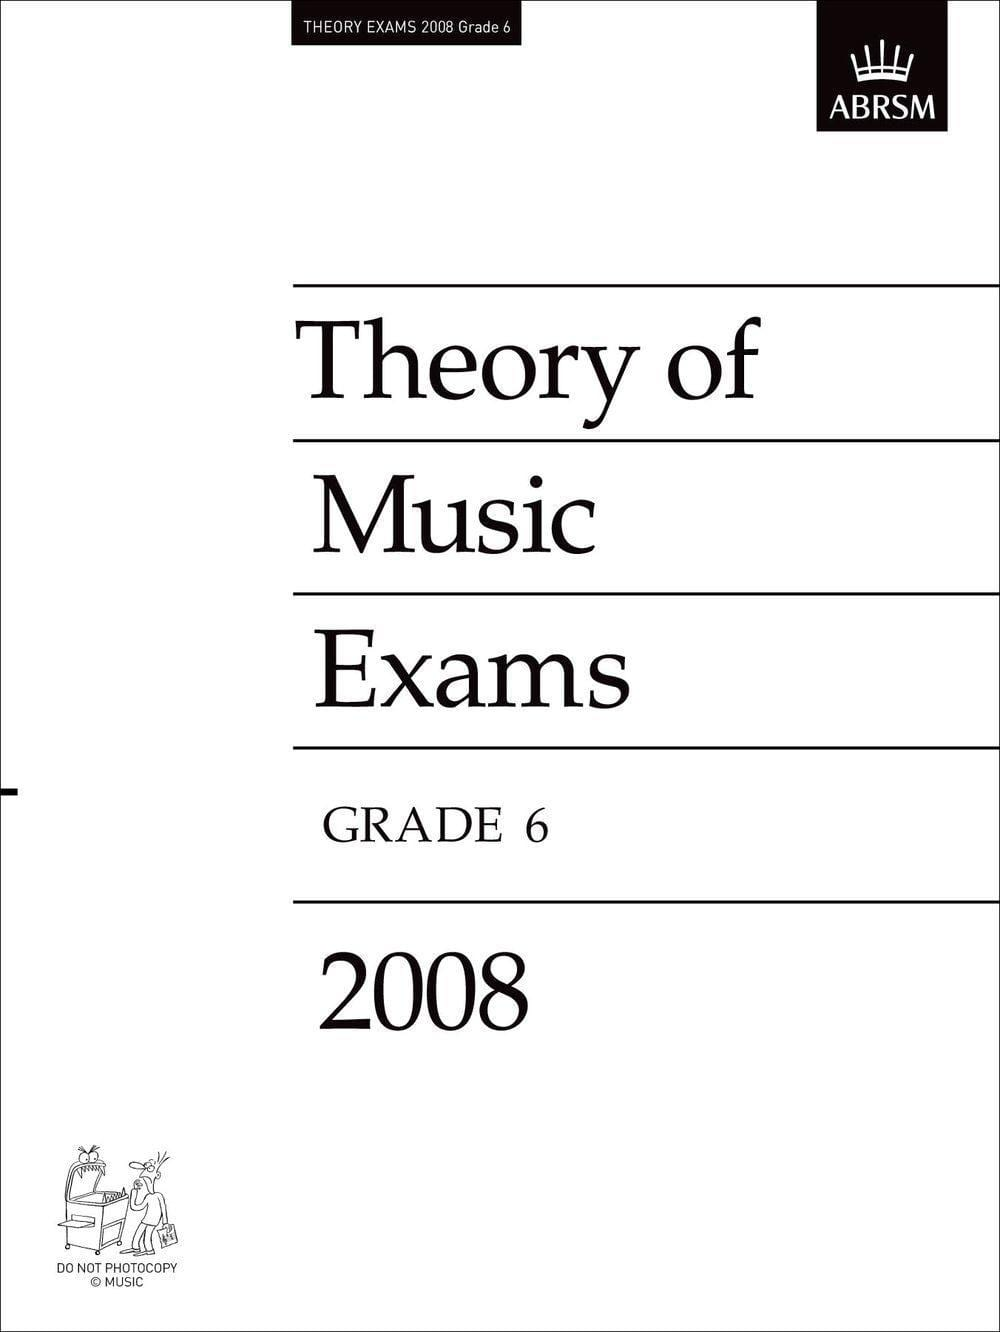 ABRSM Theory Of Music Examinations Test Paper - Biggars Music